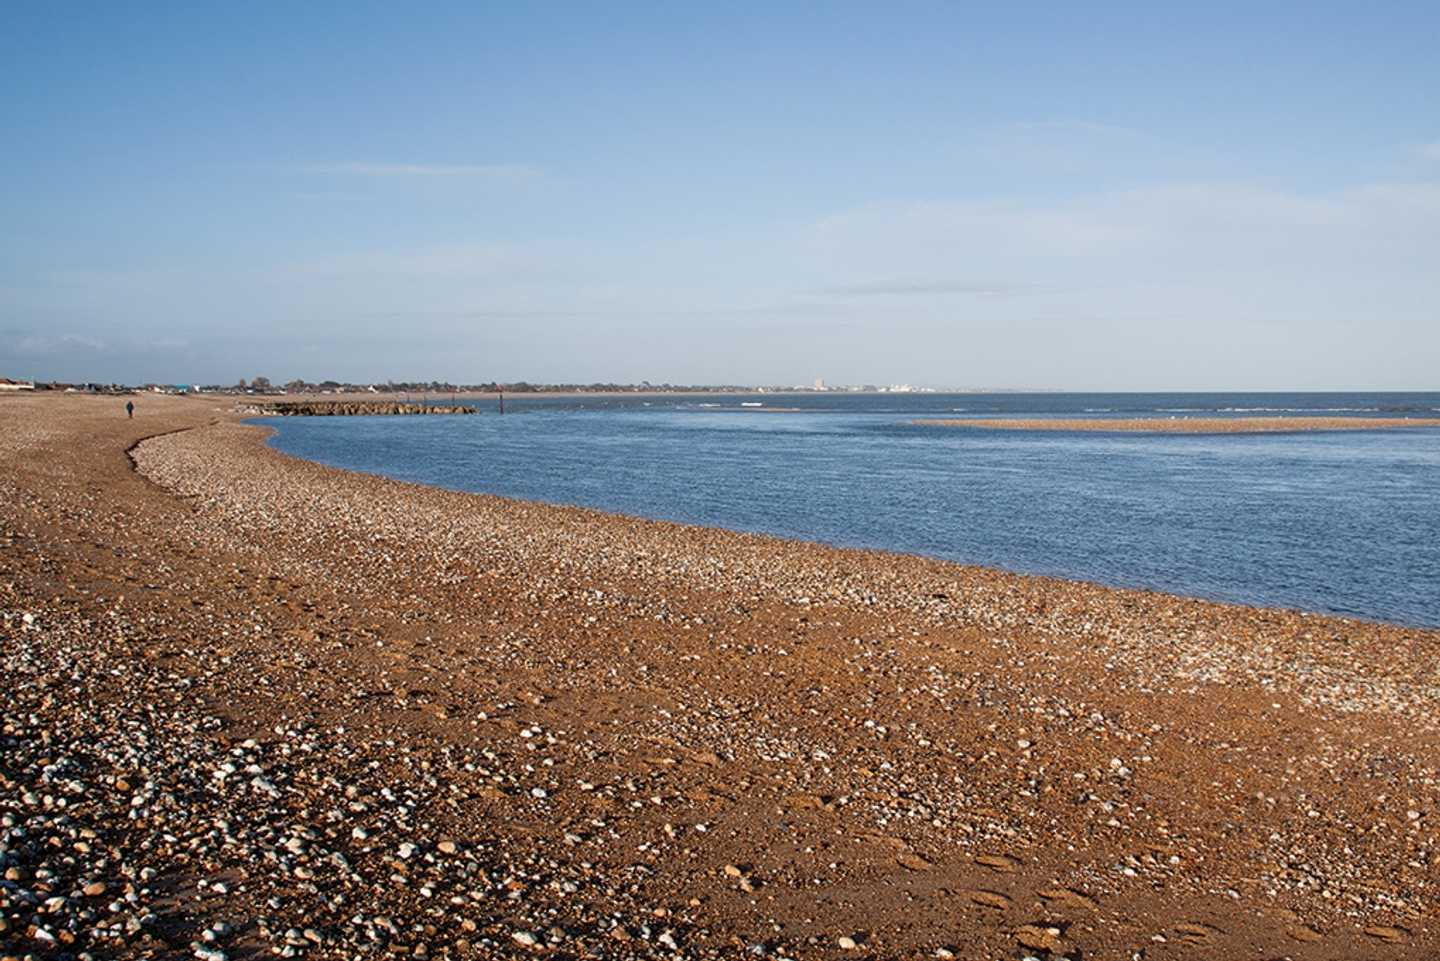 Panoramic view of shingle beach and shore, Pagham Harbour